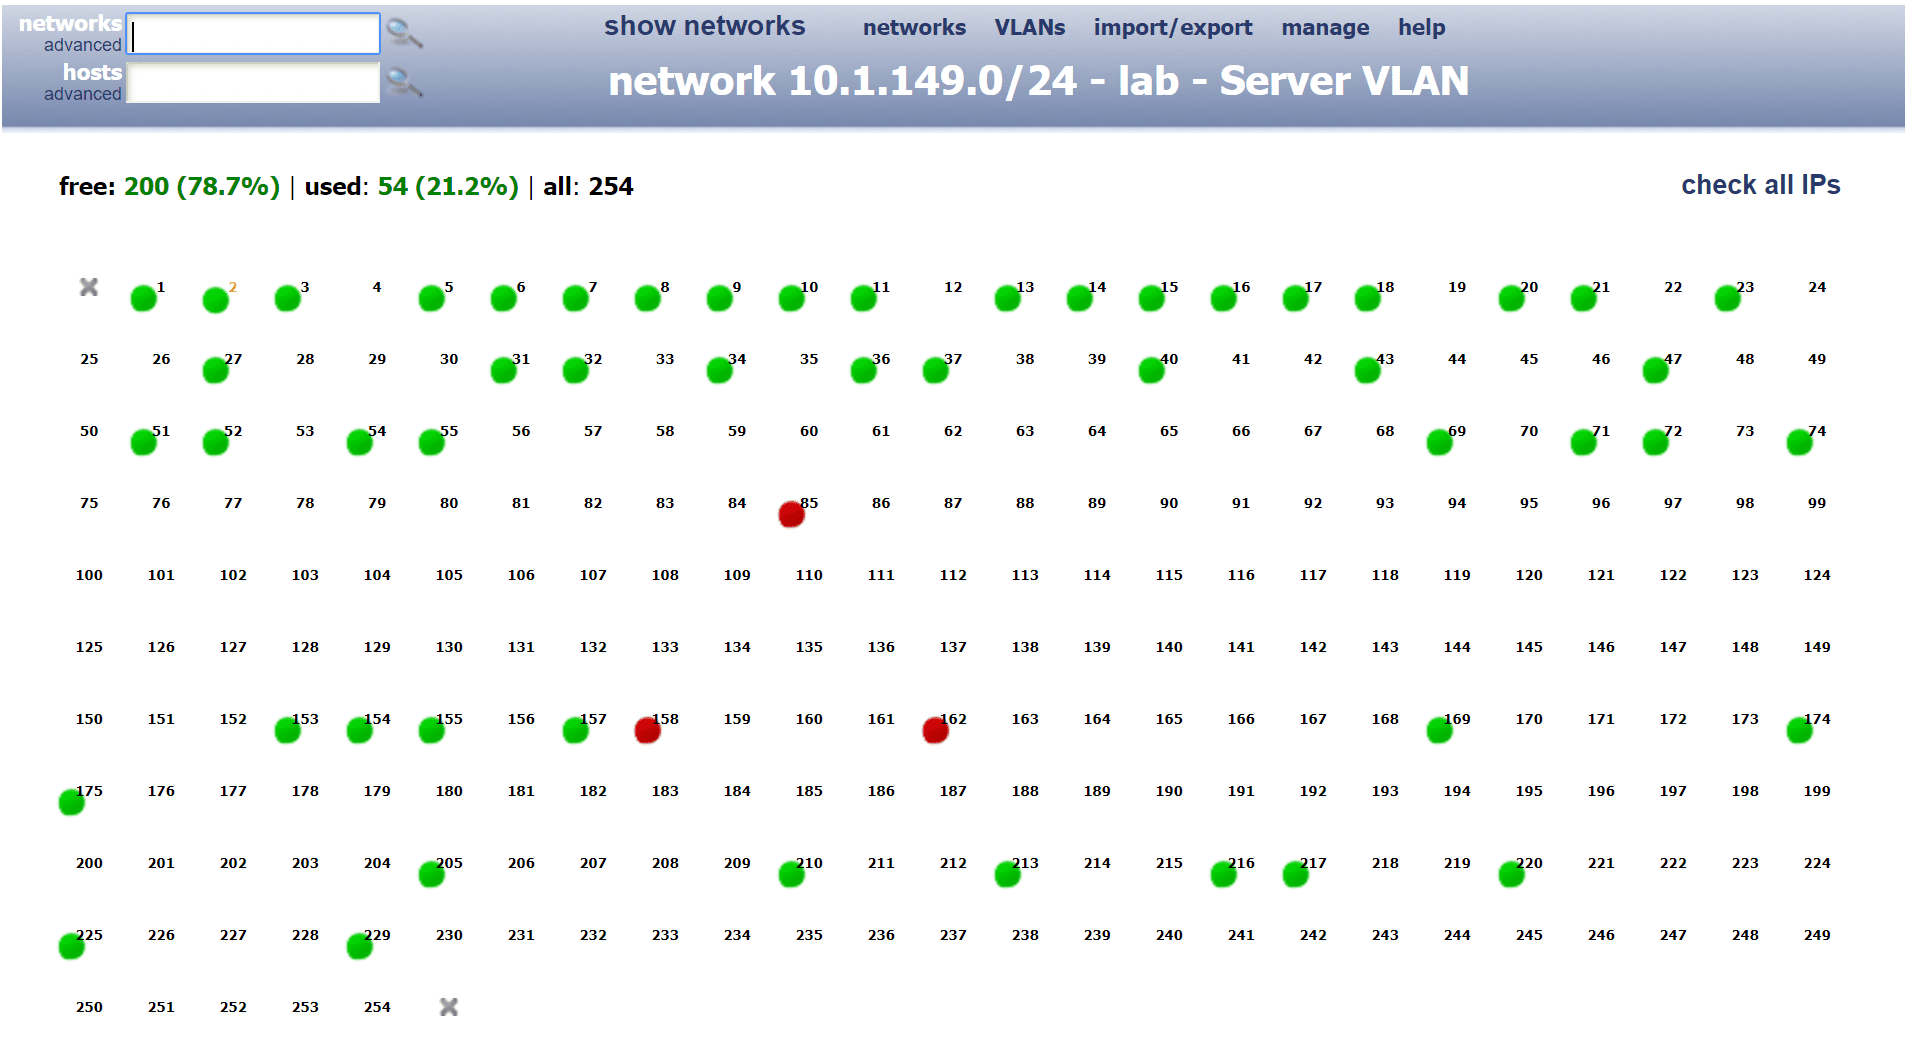 Network-IP-usage-displayed-in-an-easy-to-discern-format